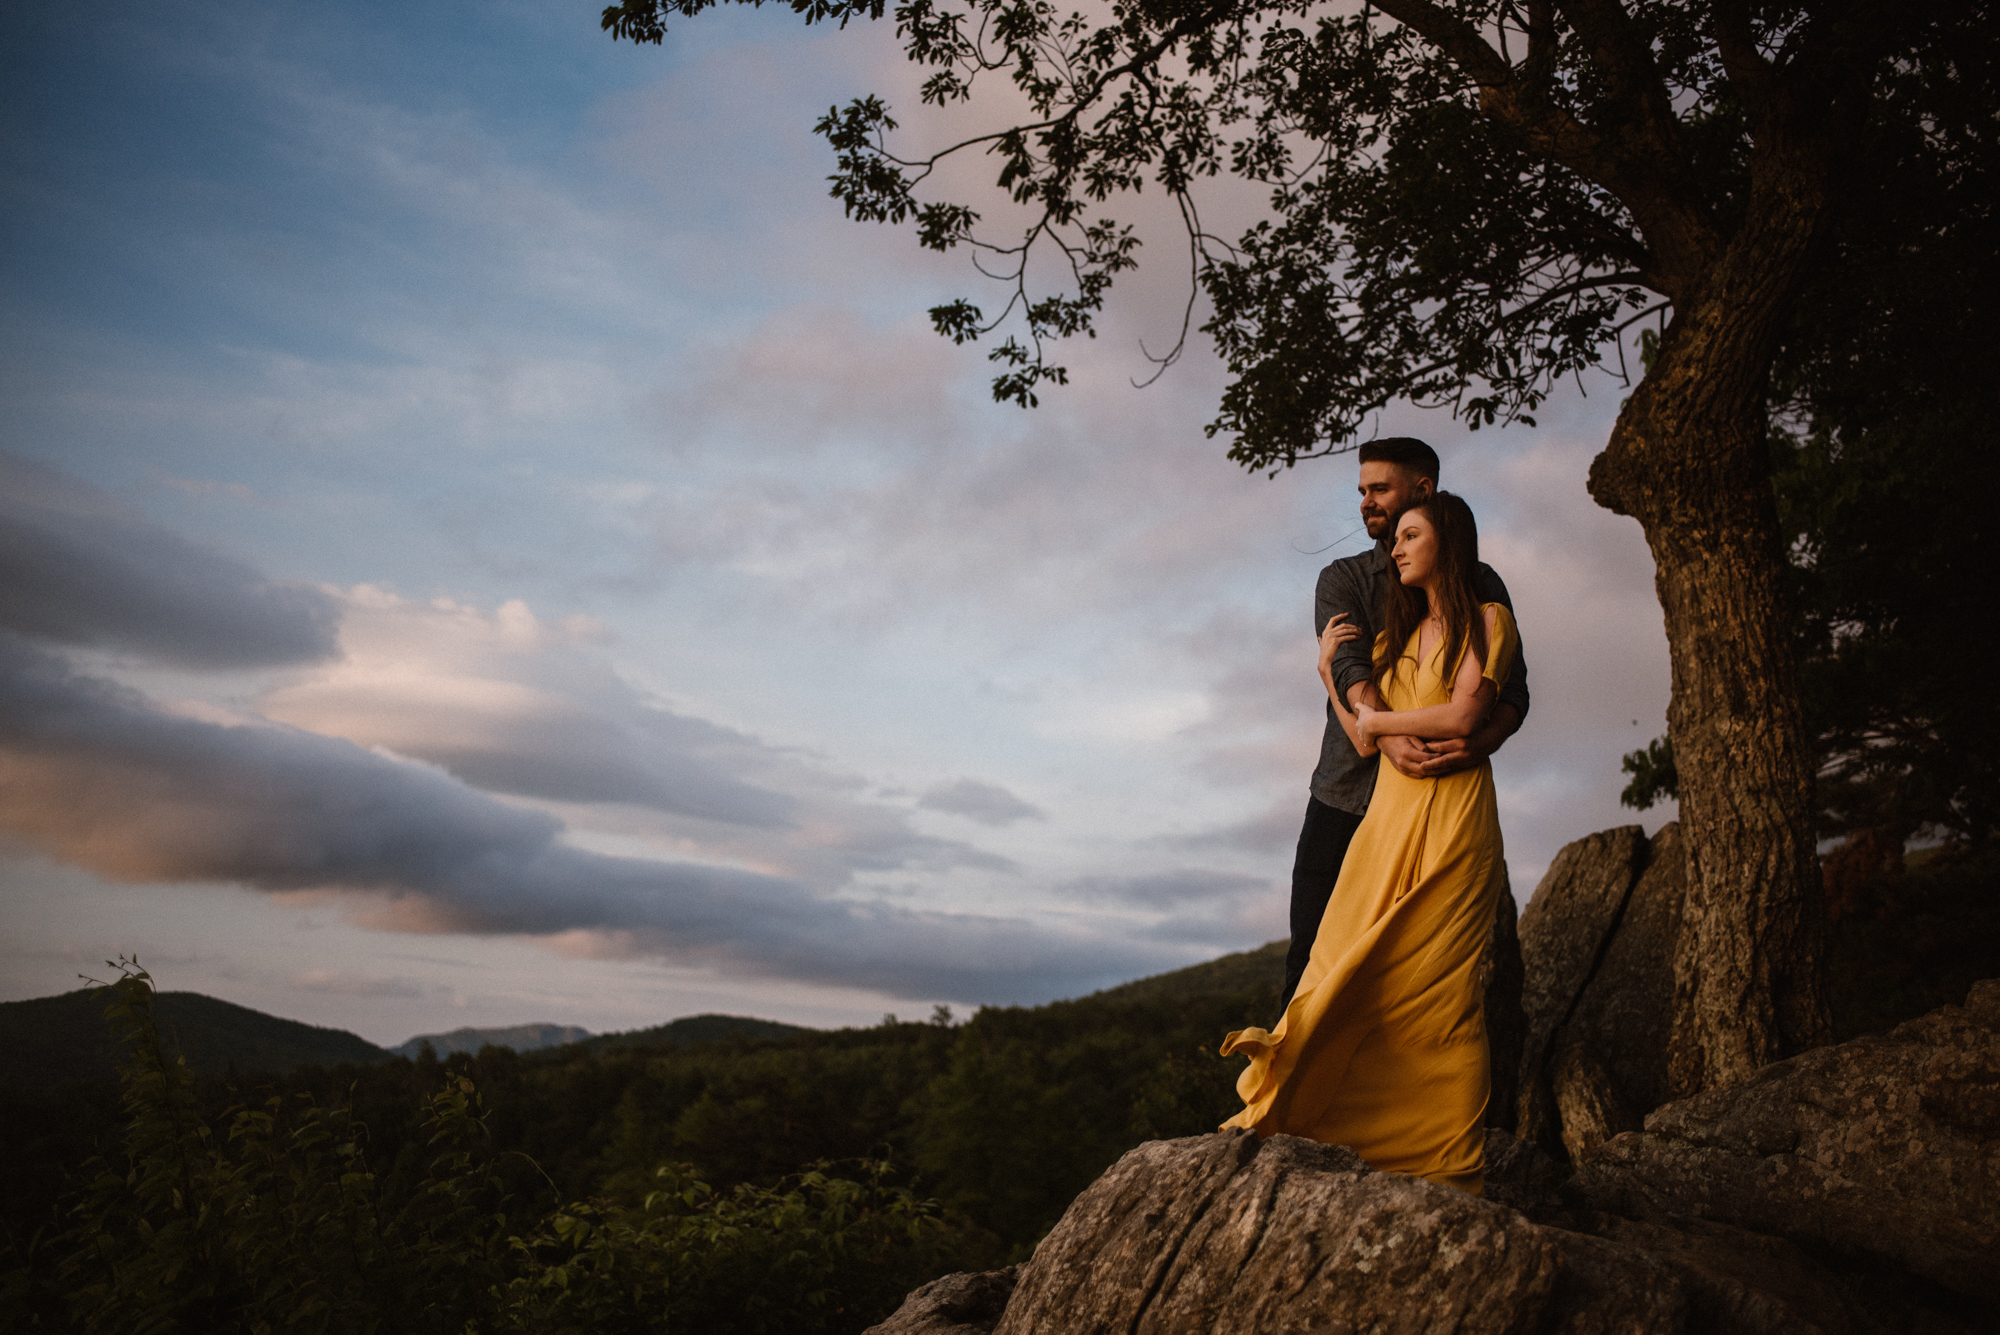 Camryn and Larry Sunrise Engagement Session in Shenandoah National Park - Things to Do in Luray Virginia - Adventurous Couple Photo Shoot White Sails Creative_11.jpg